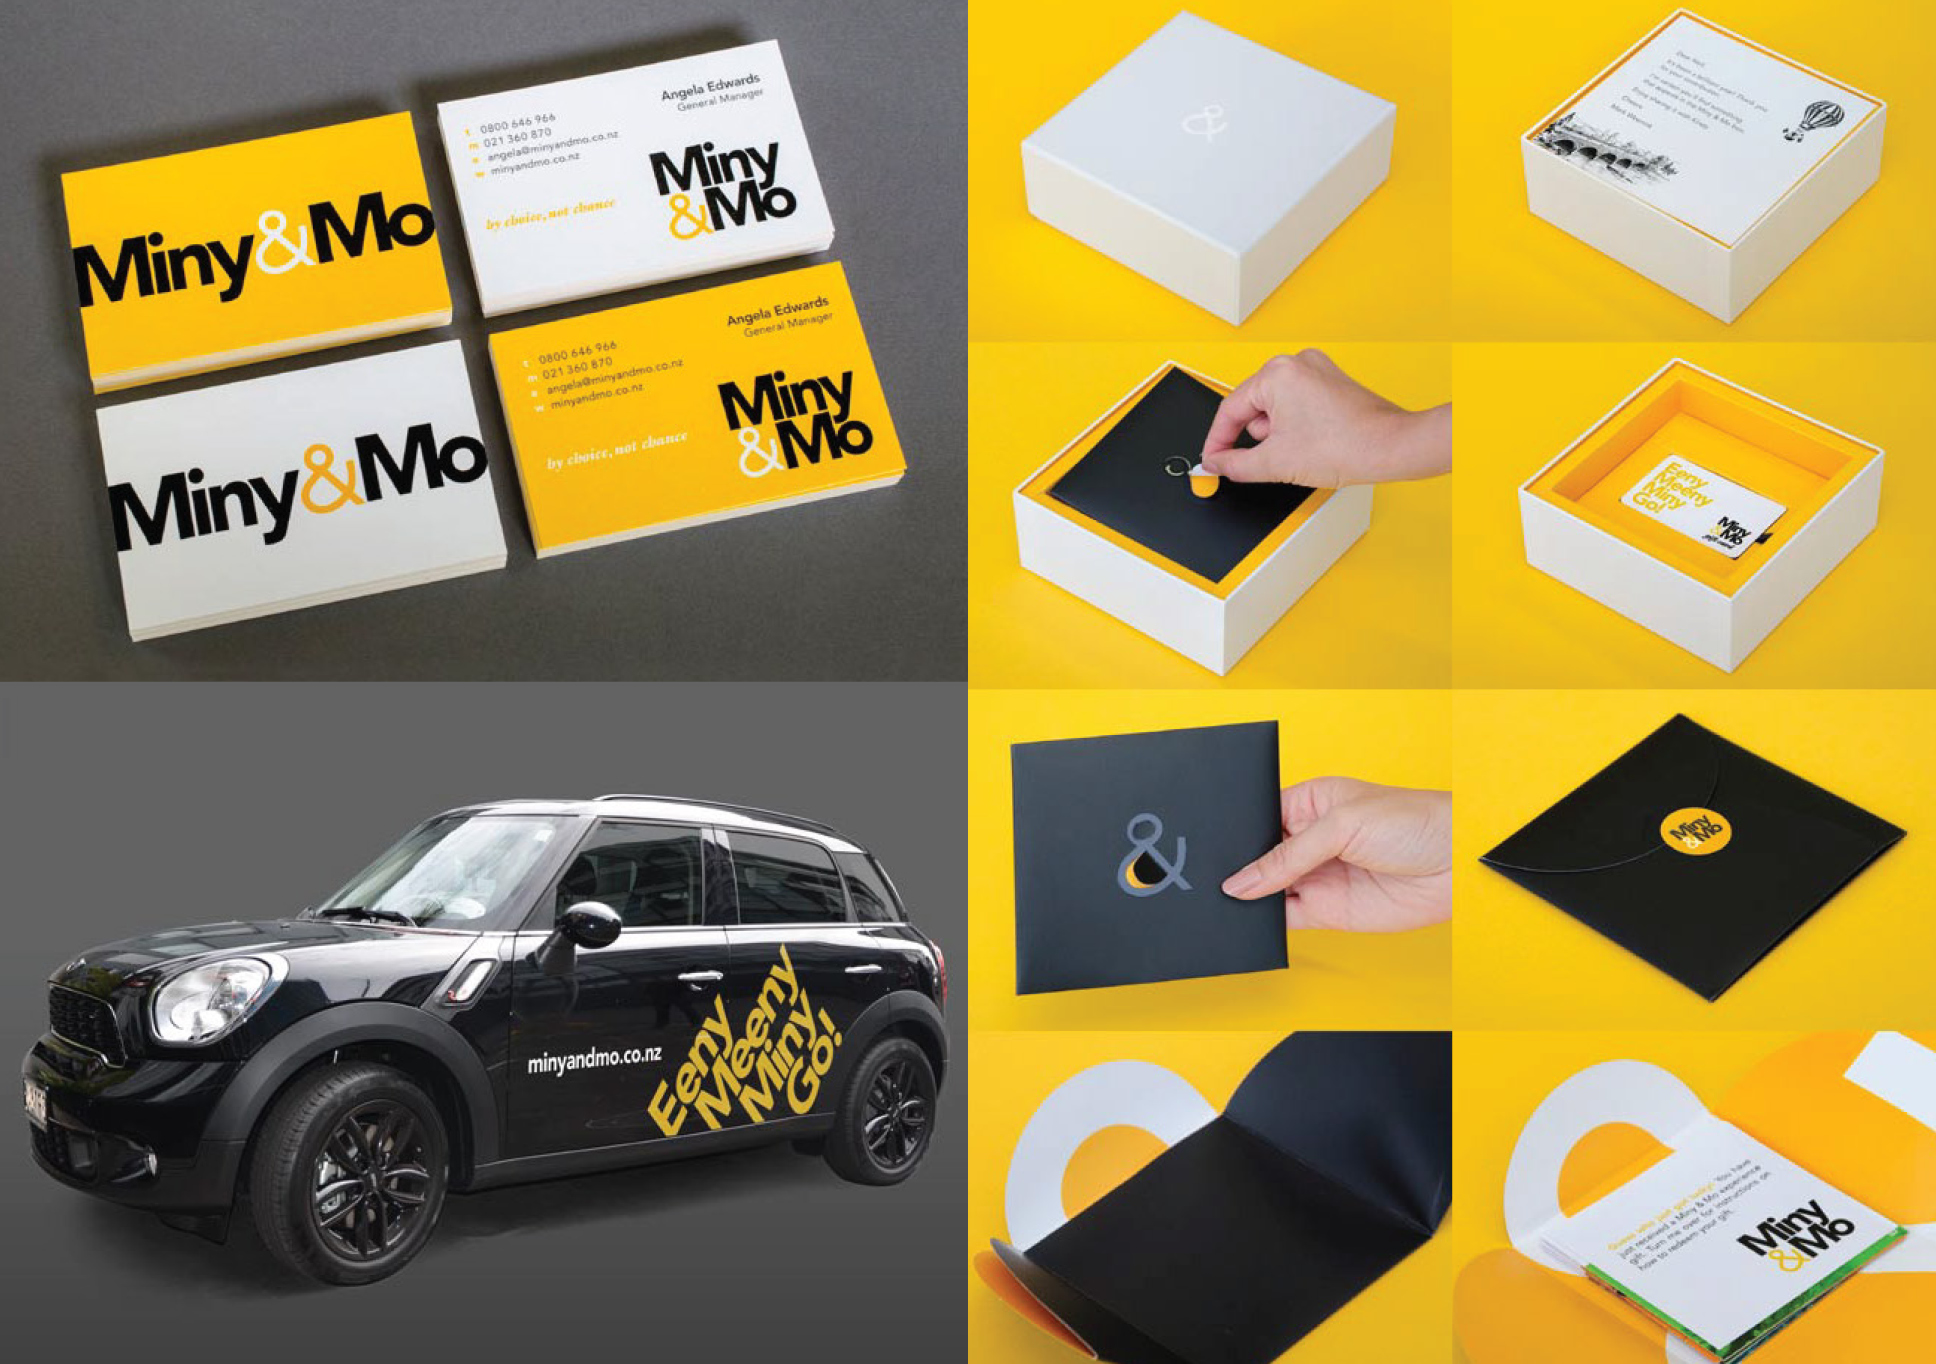 Miny&Mo vehicle graphics and packaging